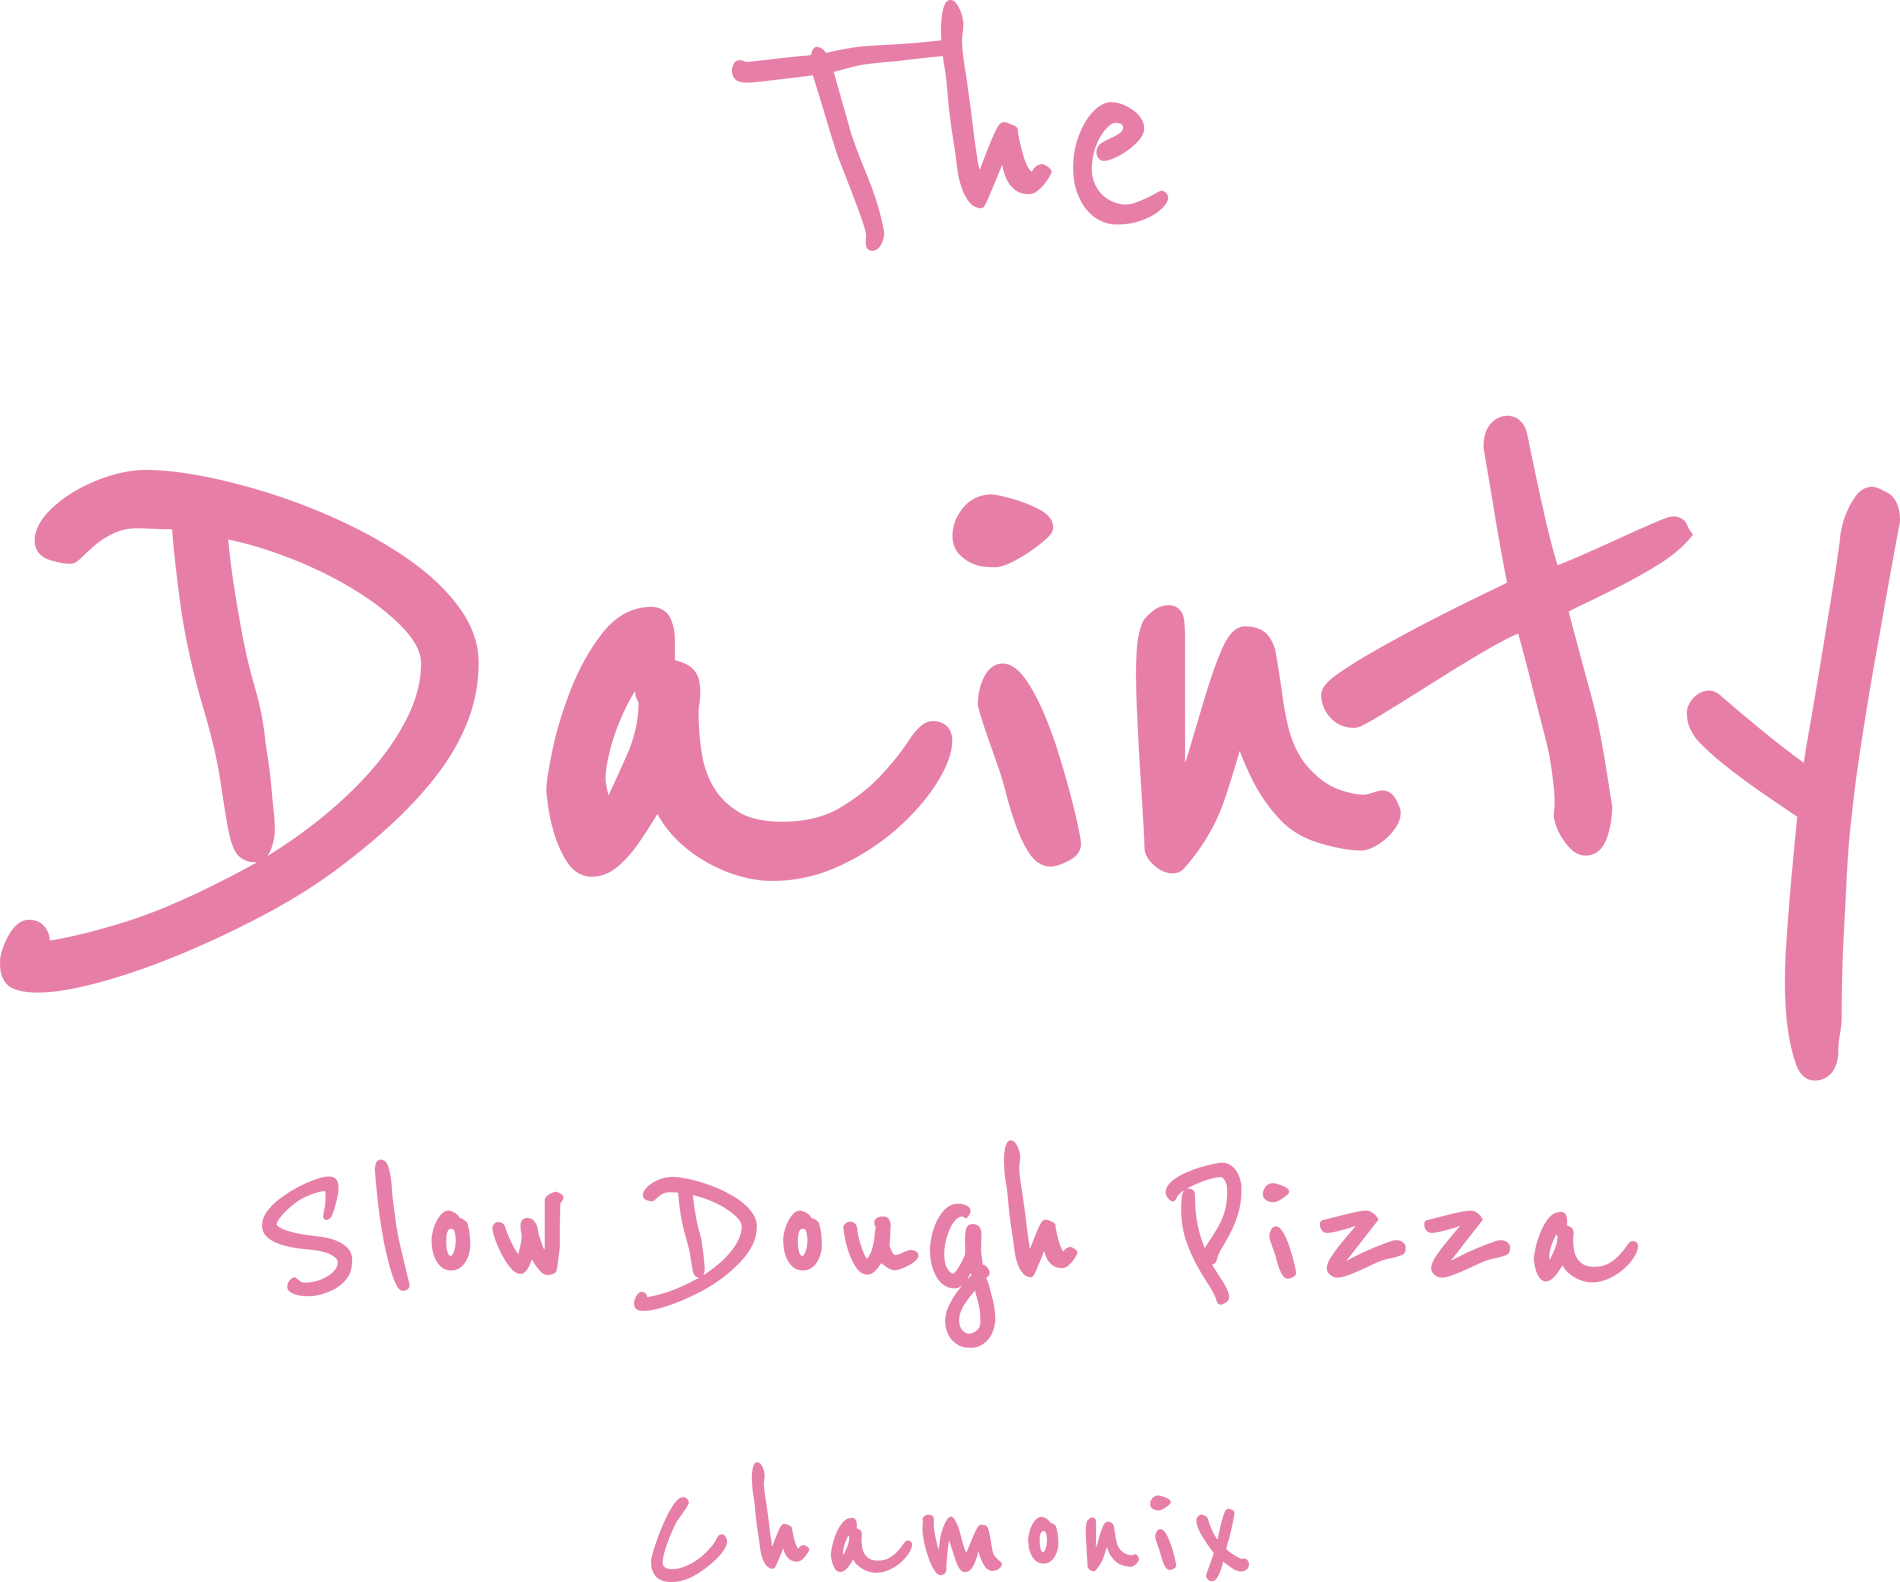 The Dainty Pizza